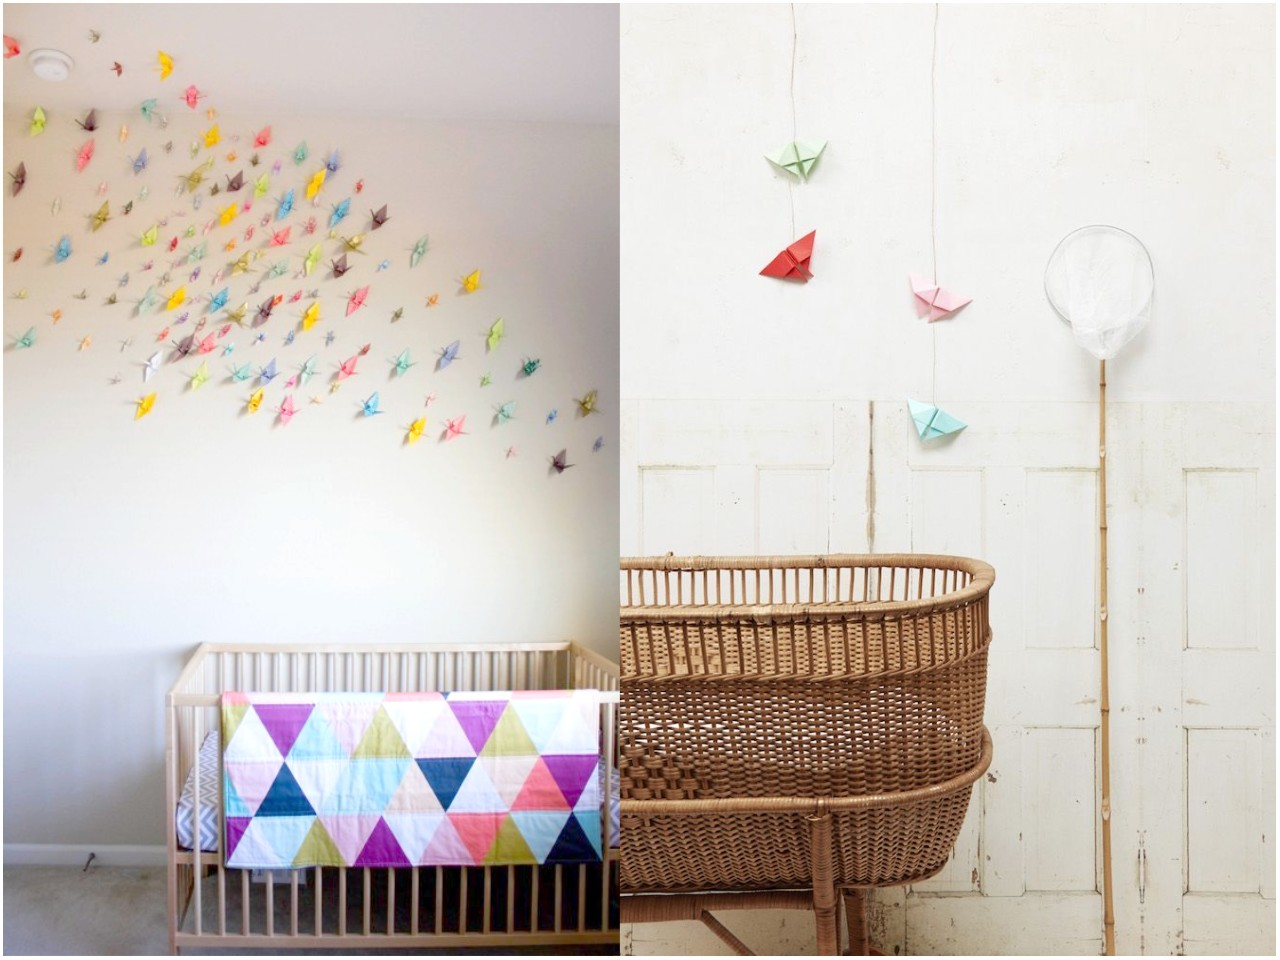 12 ideas econ micas para decorar habitaciones infantiles for Paredes bonitas